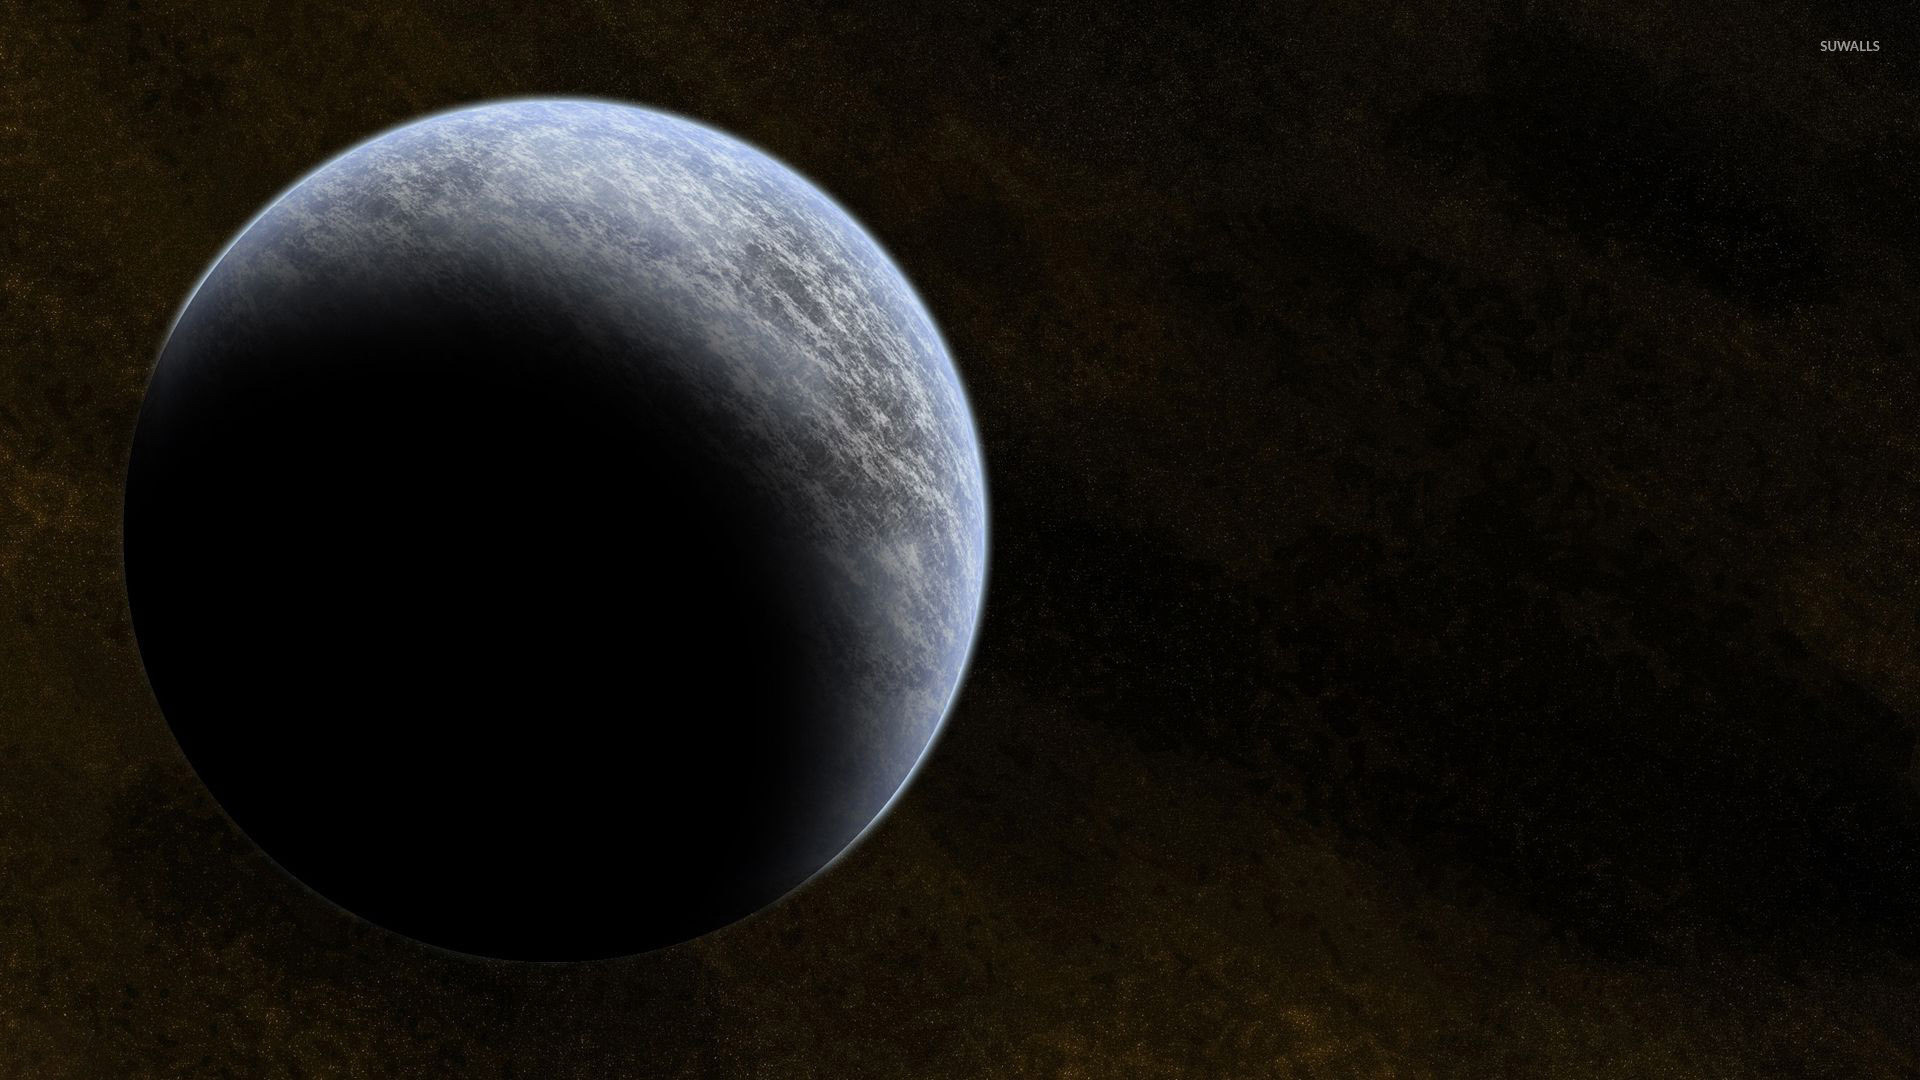 Gray planet in the brown universe wallpaper